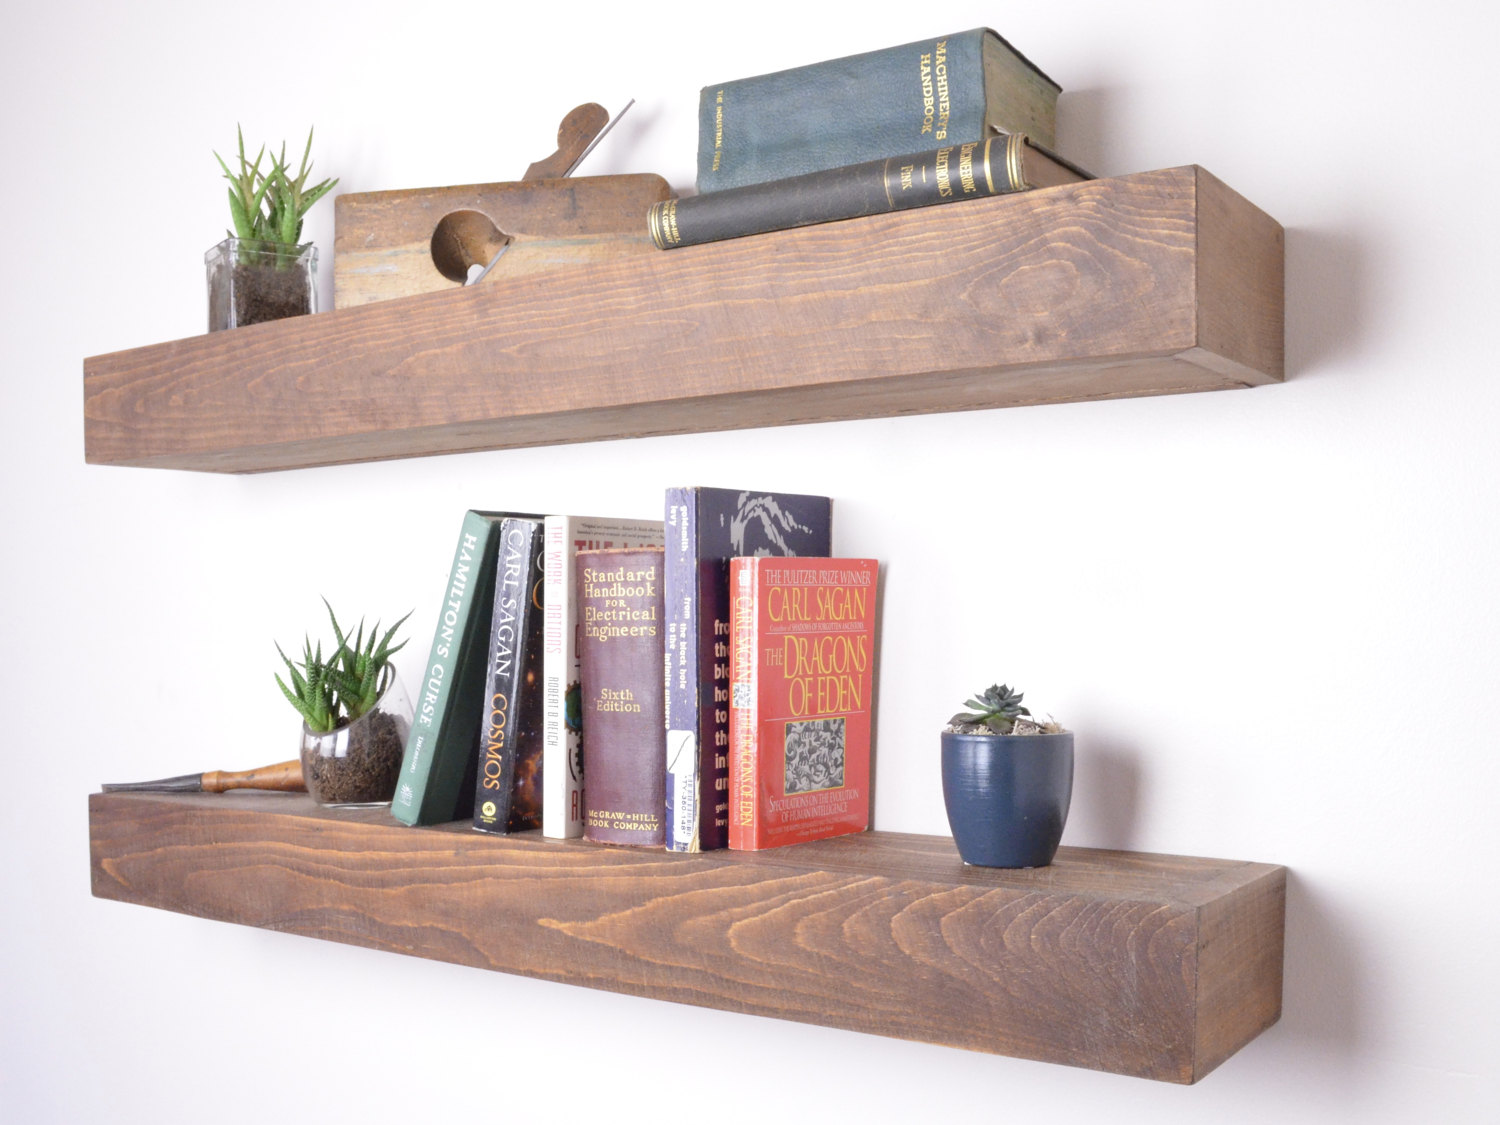 floating shelves rustic shelf chunky etsy fullxfull with drawer blu ray player wall closet storage kmart modular ture shelving systems make ledge ikea shoe tidy decorative ideas